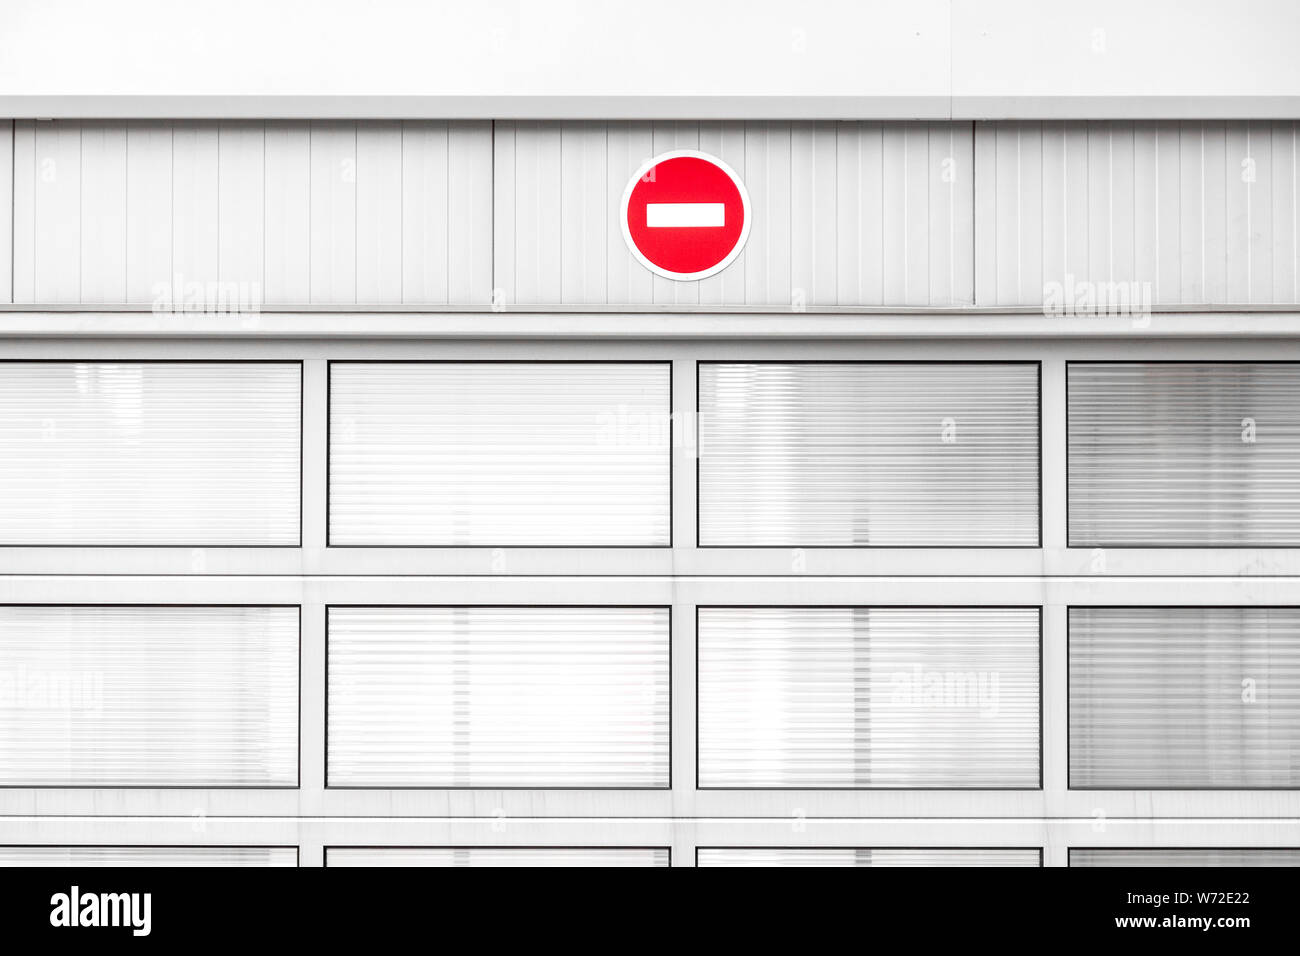 No entry traffic sign on gray industrial wall, minimalist architecture with warning road sign, red color pop up Stock Photo